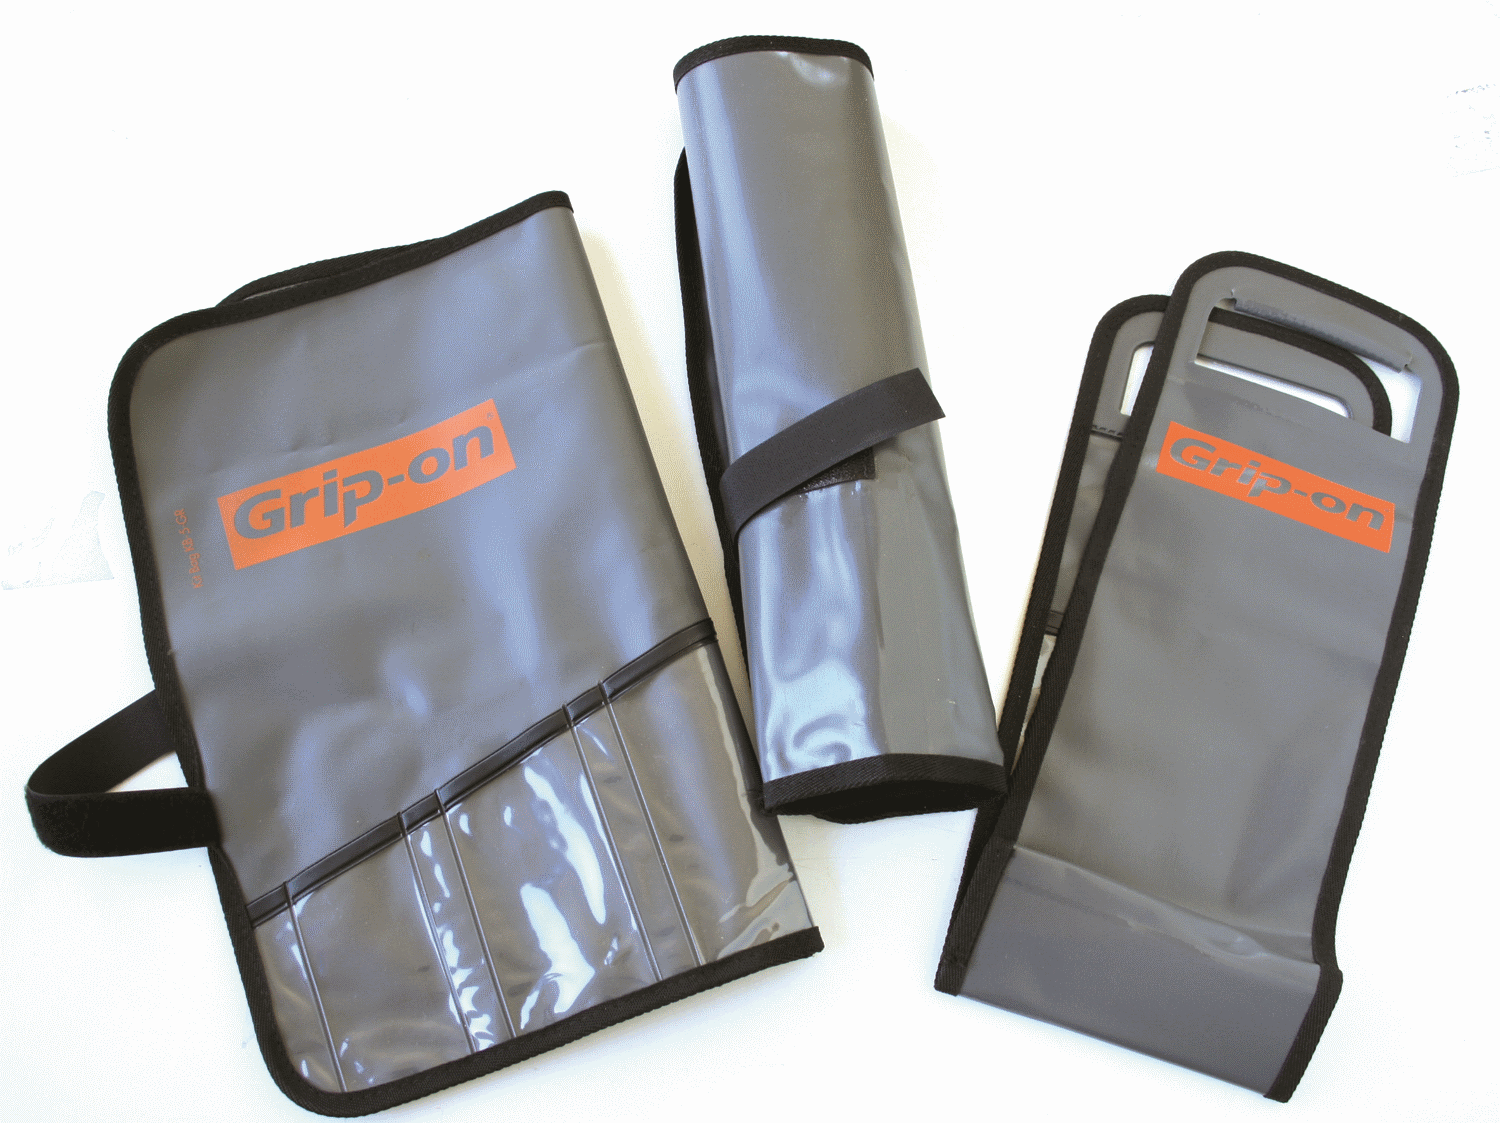 GRIP-ON Rullmapp m. handtag.